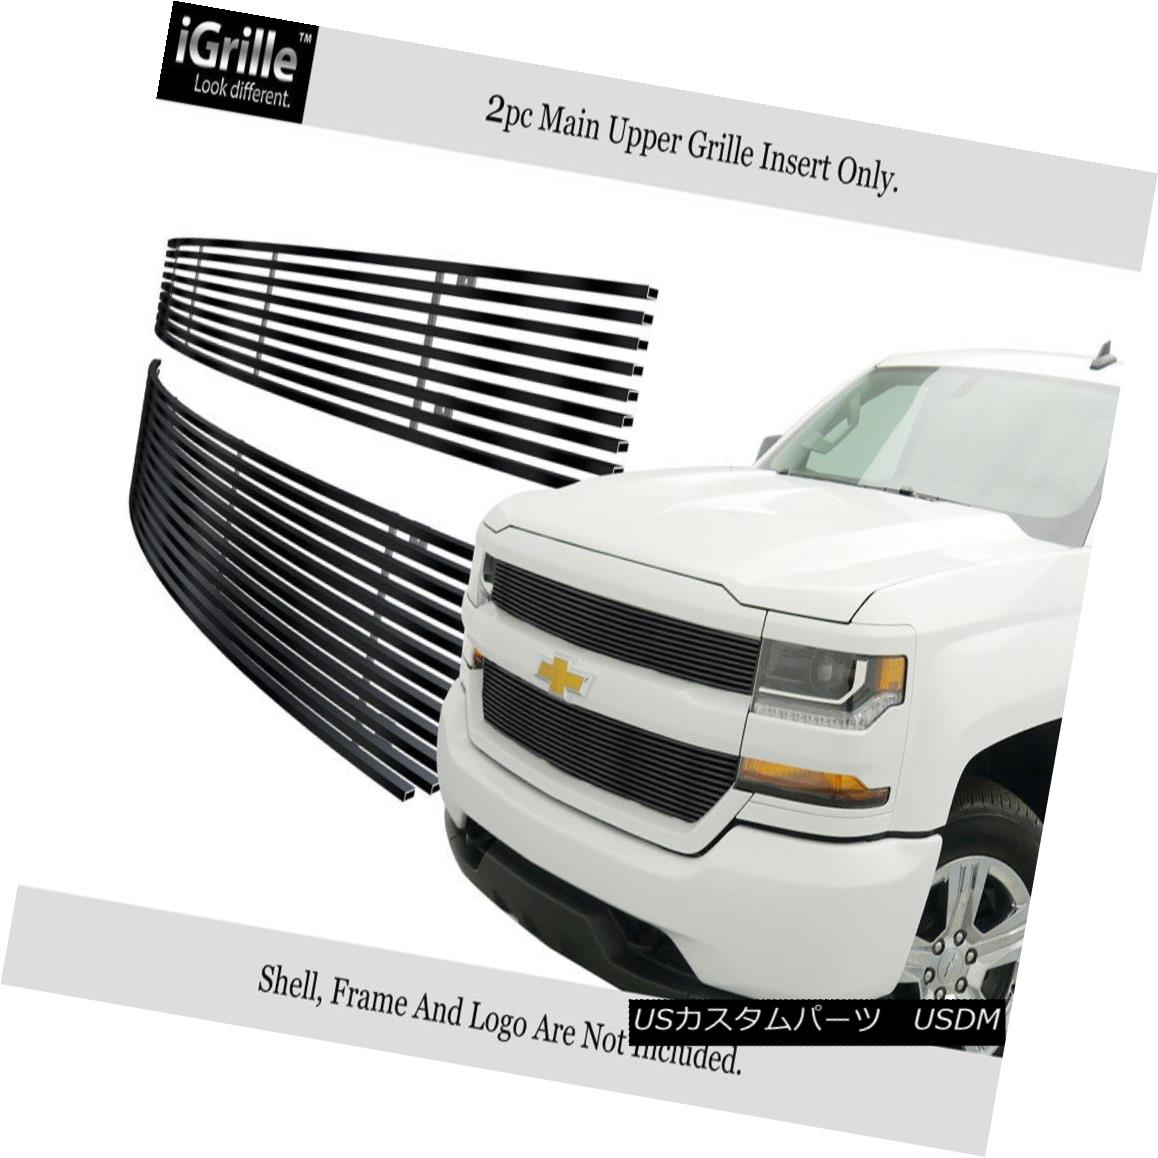 グリル For 2016-2018 Chevy Silverado 1500 Reg Model Stainless Black Billet Grille 2016-2018 Chevy Silverado 1500 Regモデルステンレスブラックビレットグリル